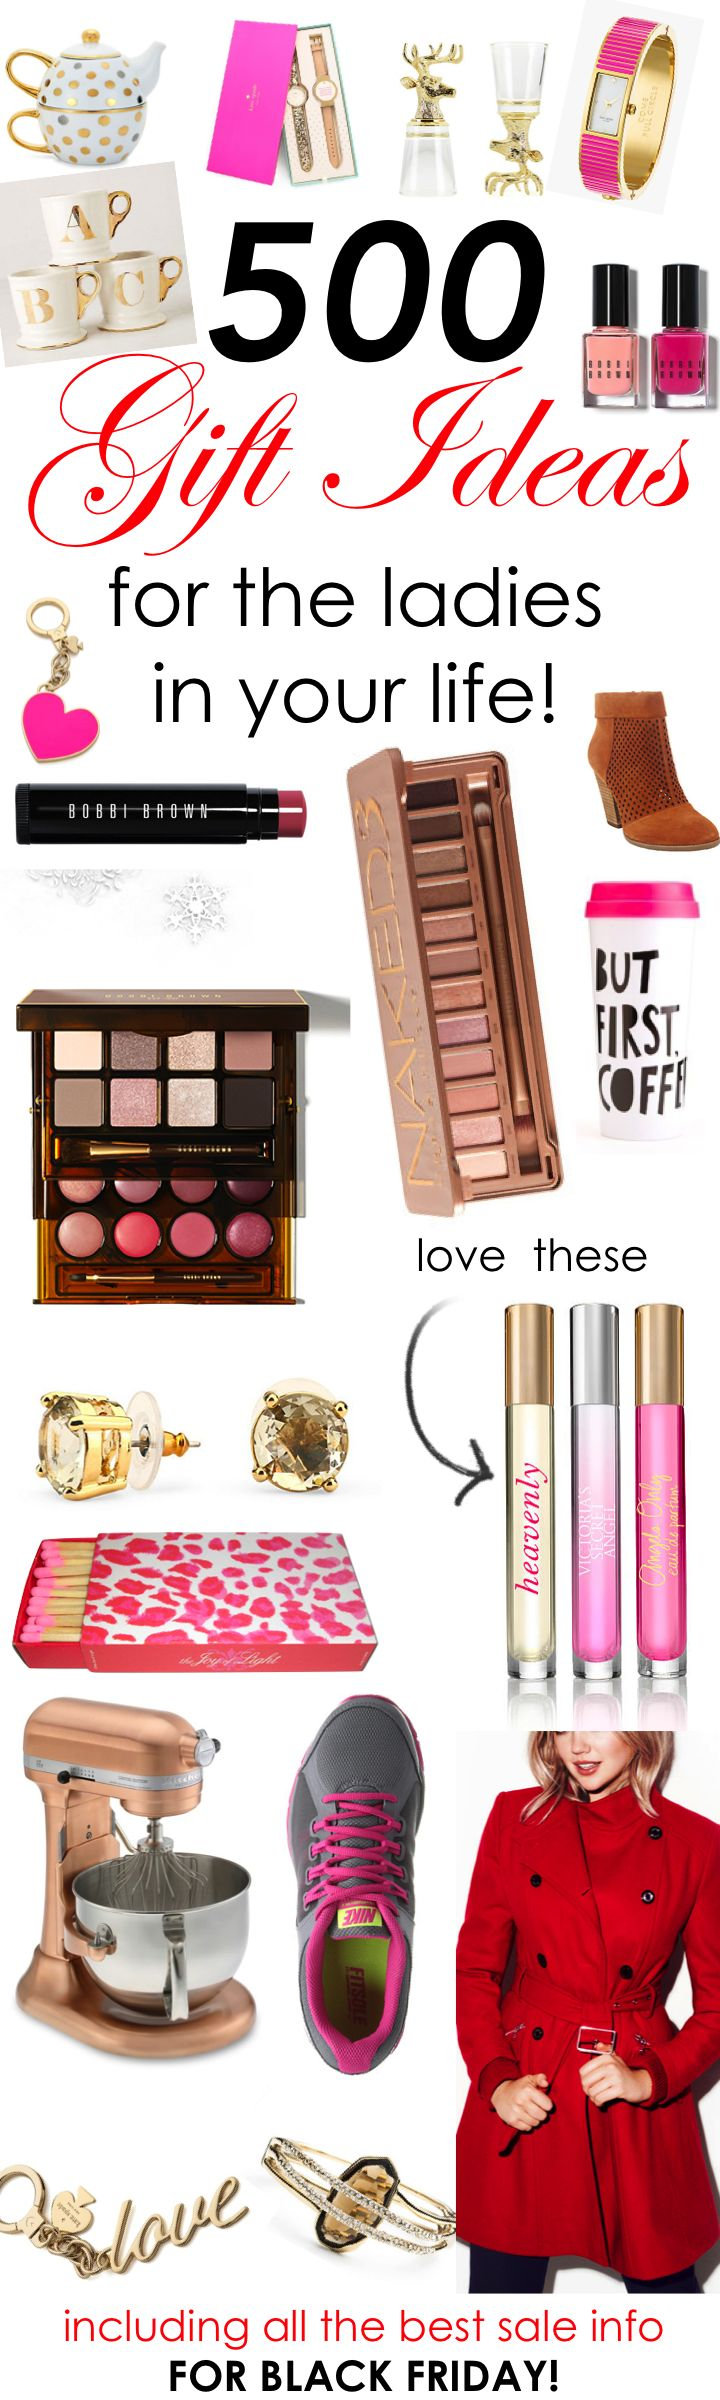 Over 500 Gift Ideas for the Ladies in Your Life! http://www.theperfectpalette.com/2014/11/over-500-gift-ideas-for-ladies-in-your.html - Plus ALL the best sale info for Black Friday!